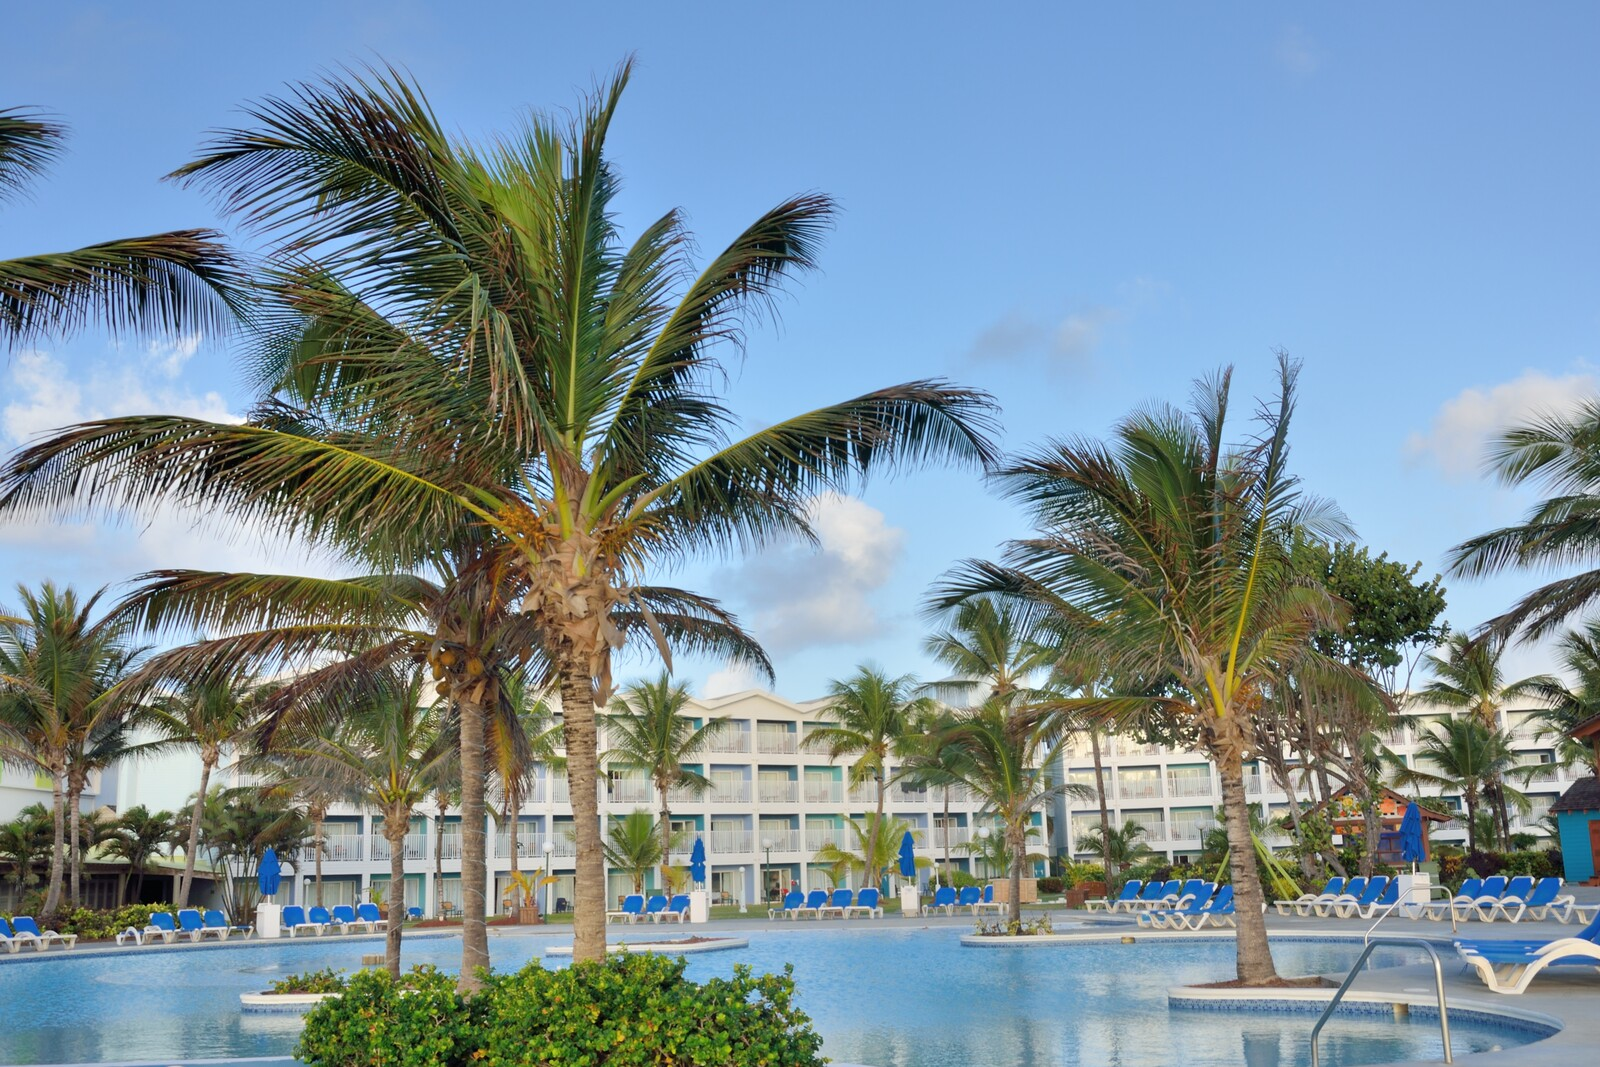 White Caribbean hotel with balconies sitting in the background of the large pool surrounded by blue  deck loungers